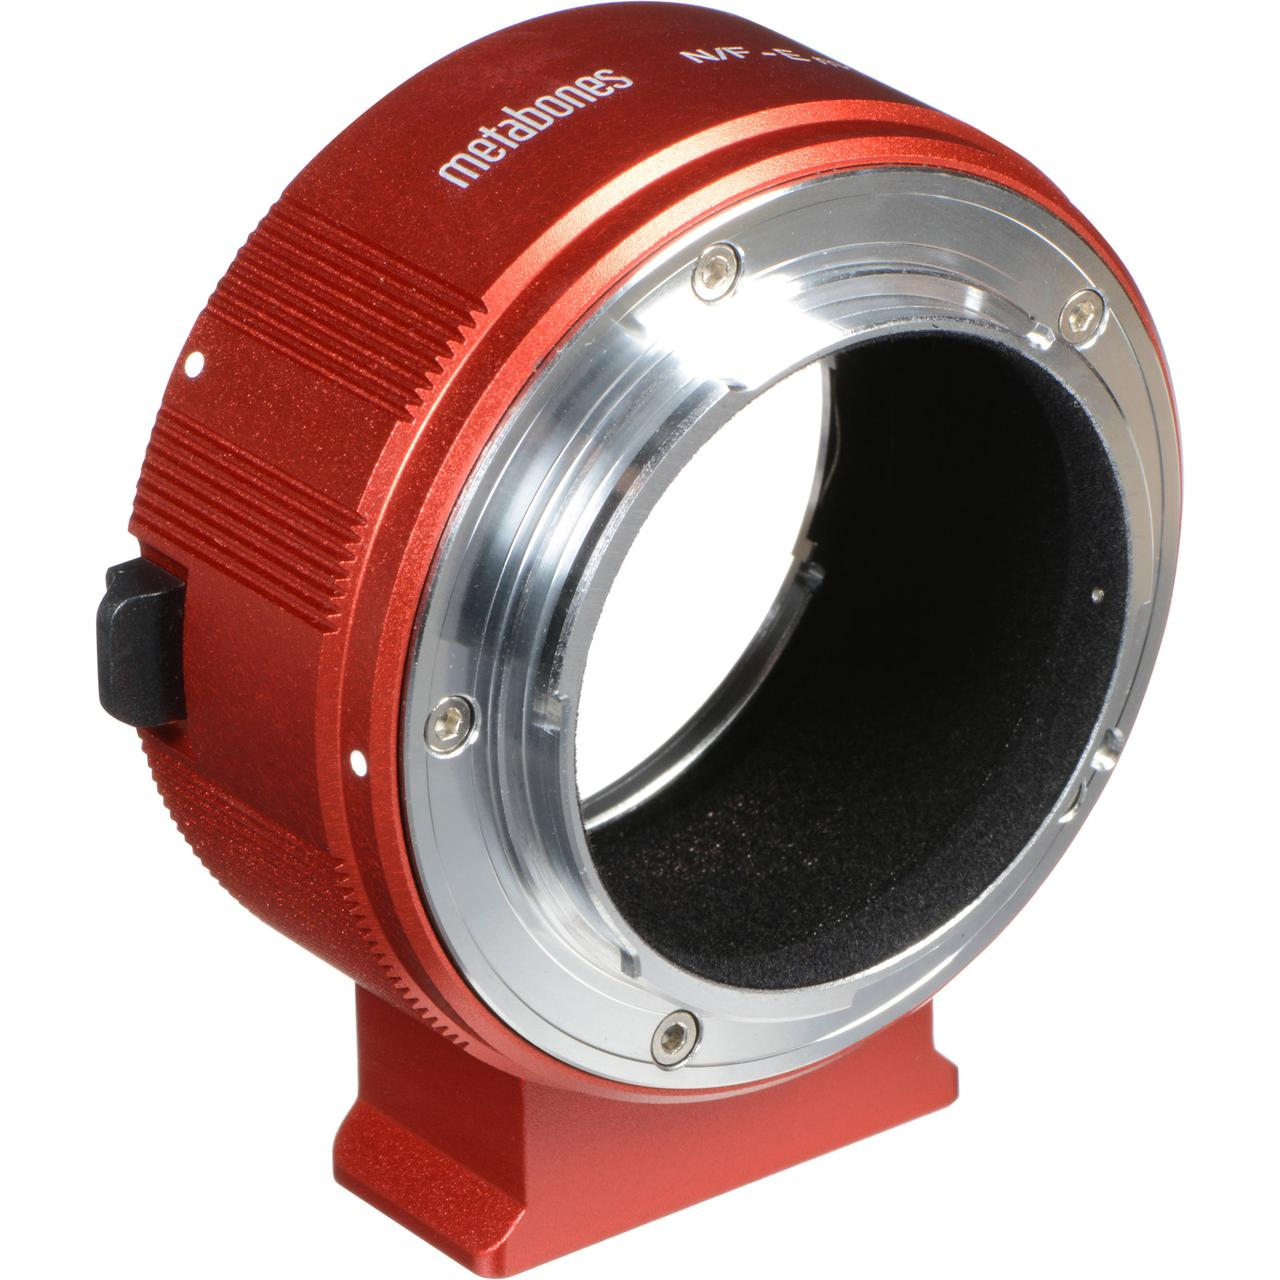 Metabones Nikon F Lens to Sony E-Mount Camera T Adapter II (Red) (MB_NF-E-RT2)